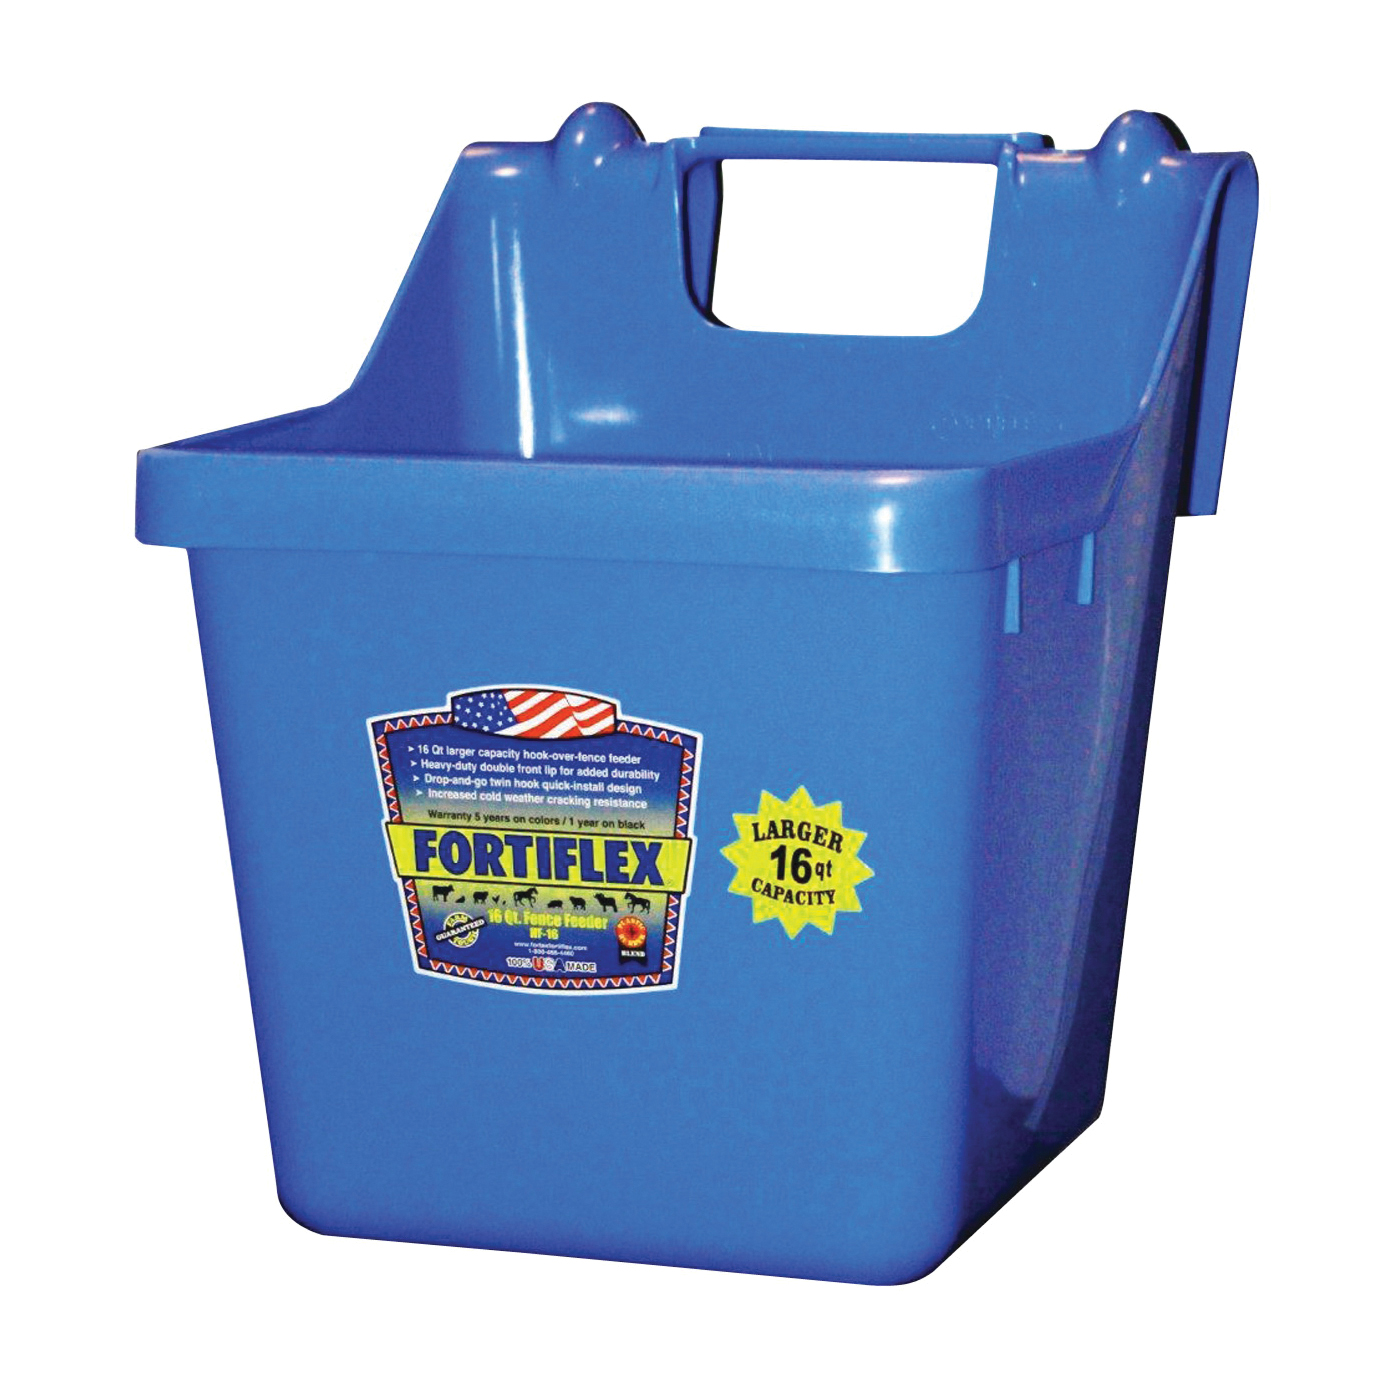 Picture of FORTEX-FORTIFLEX 1301600 Bucket Feeder, Fortalloy Rubber Polymer, Blue